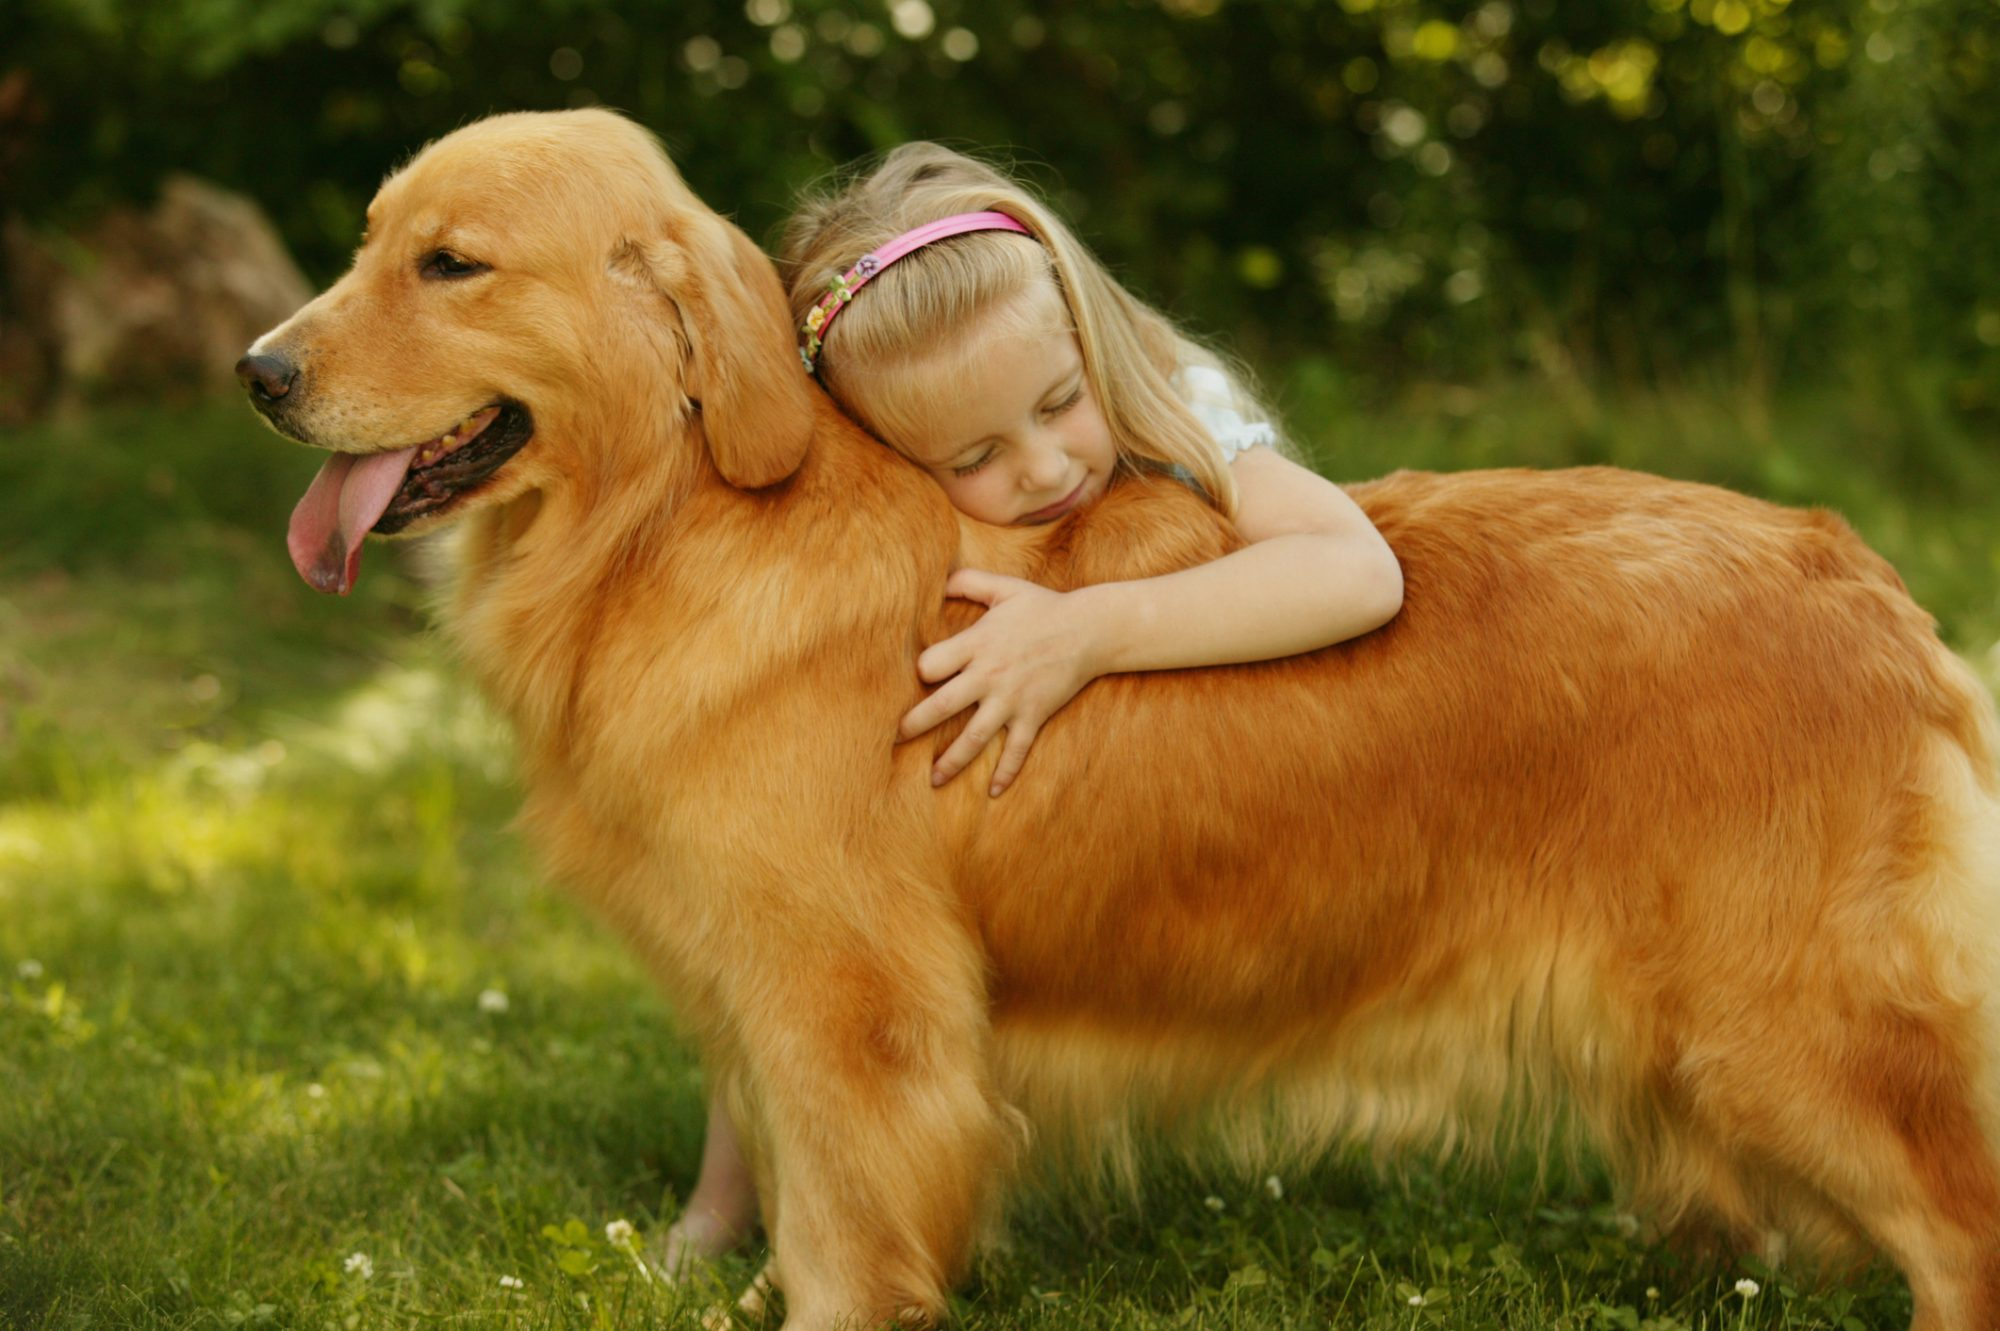 Young Girl Hugging Golden Retriever